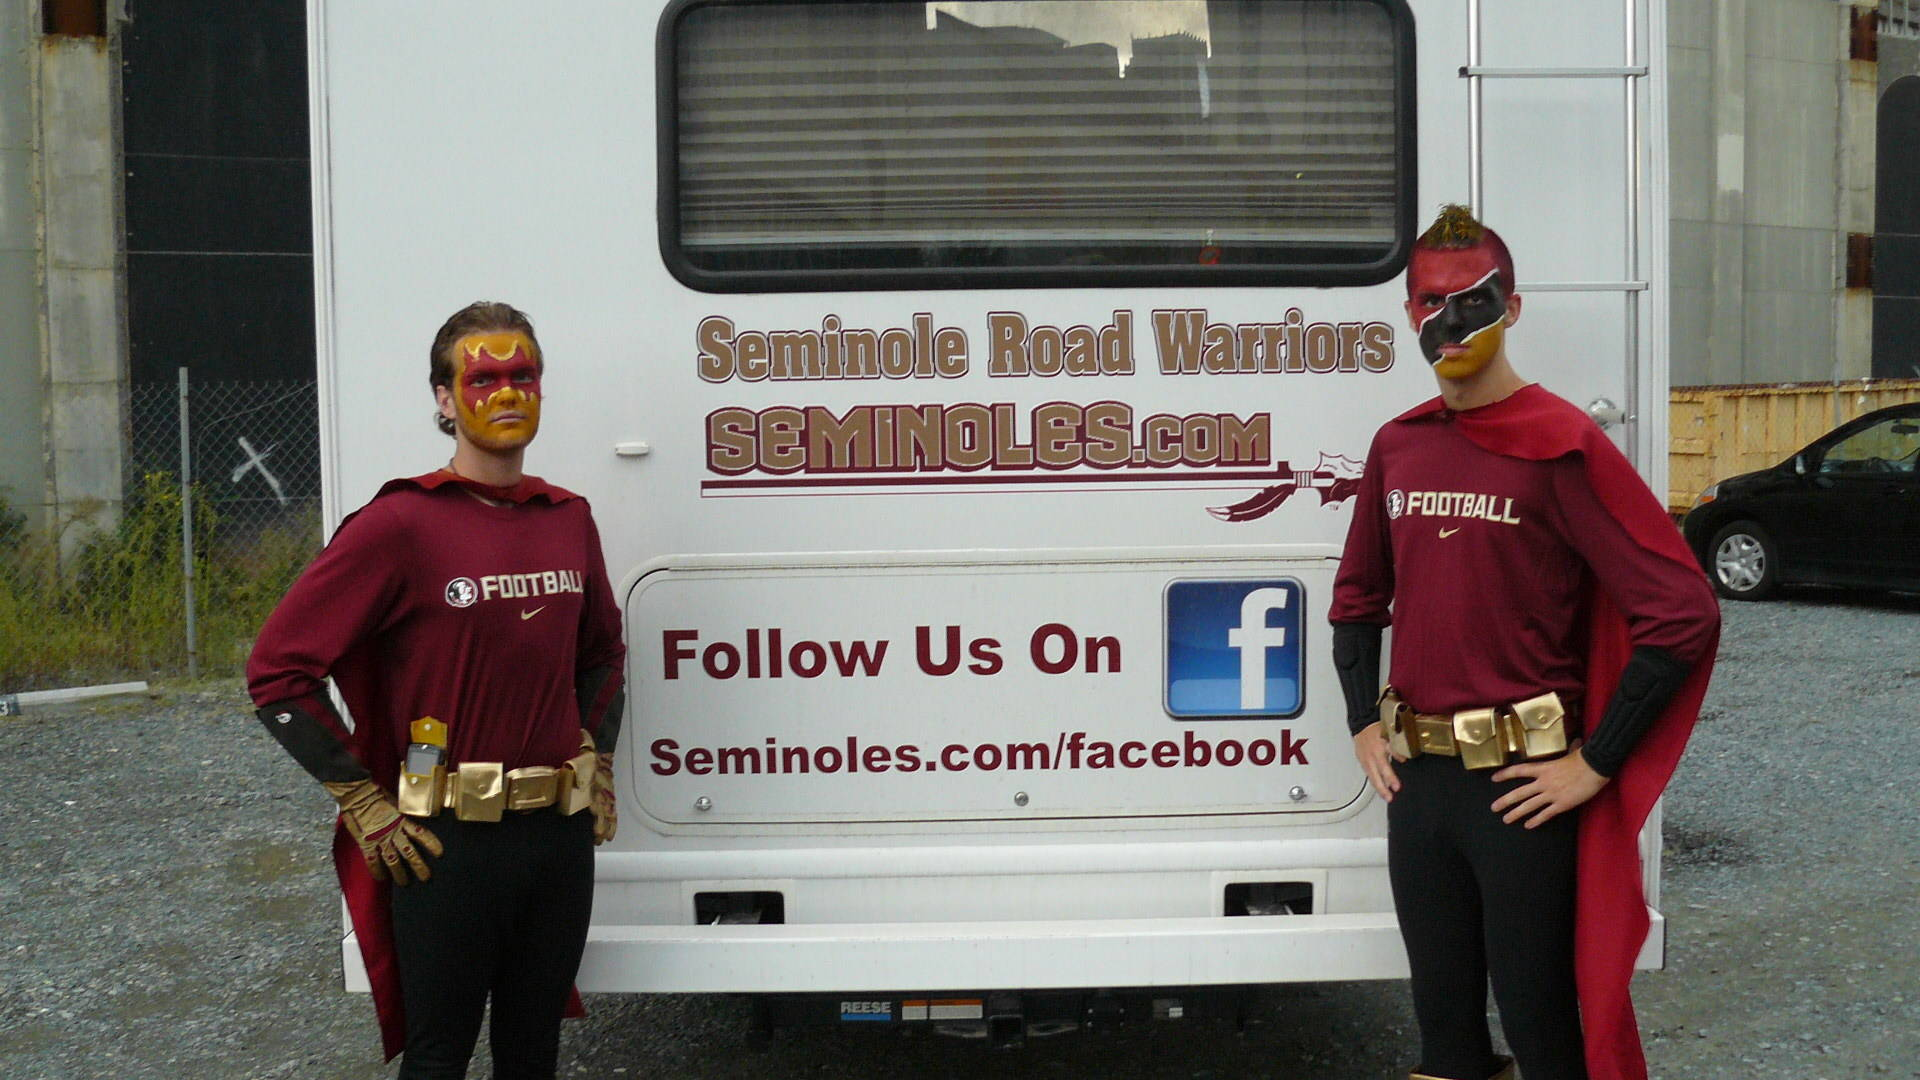 The Road Warriors have joined forces with the Super Noles.